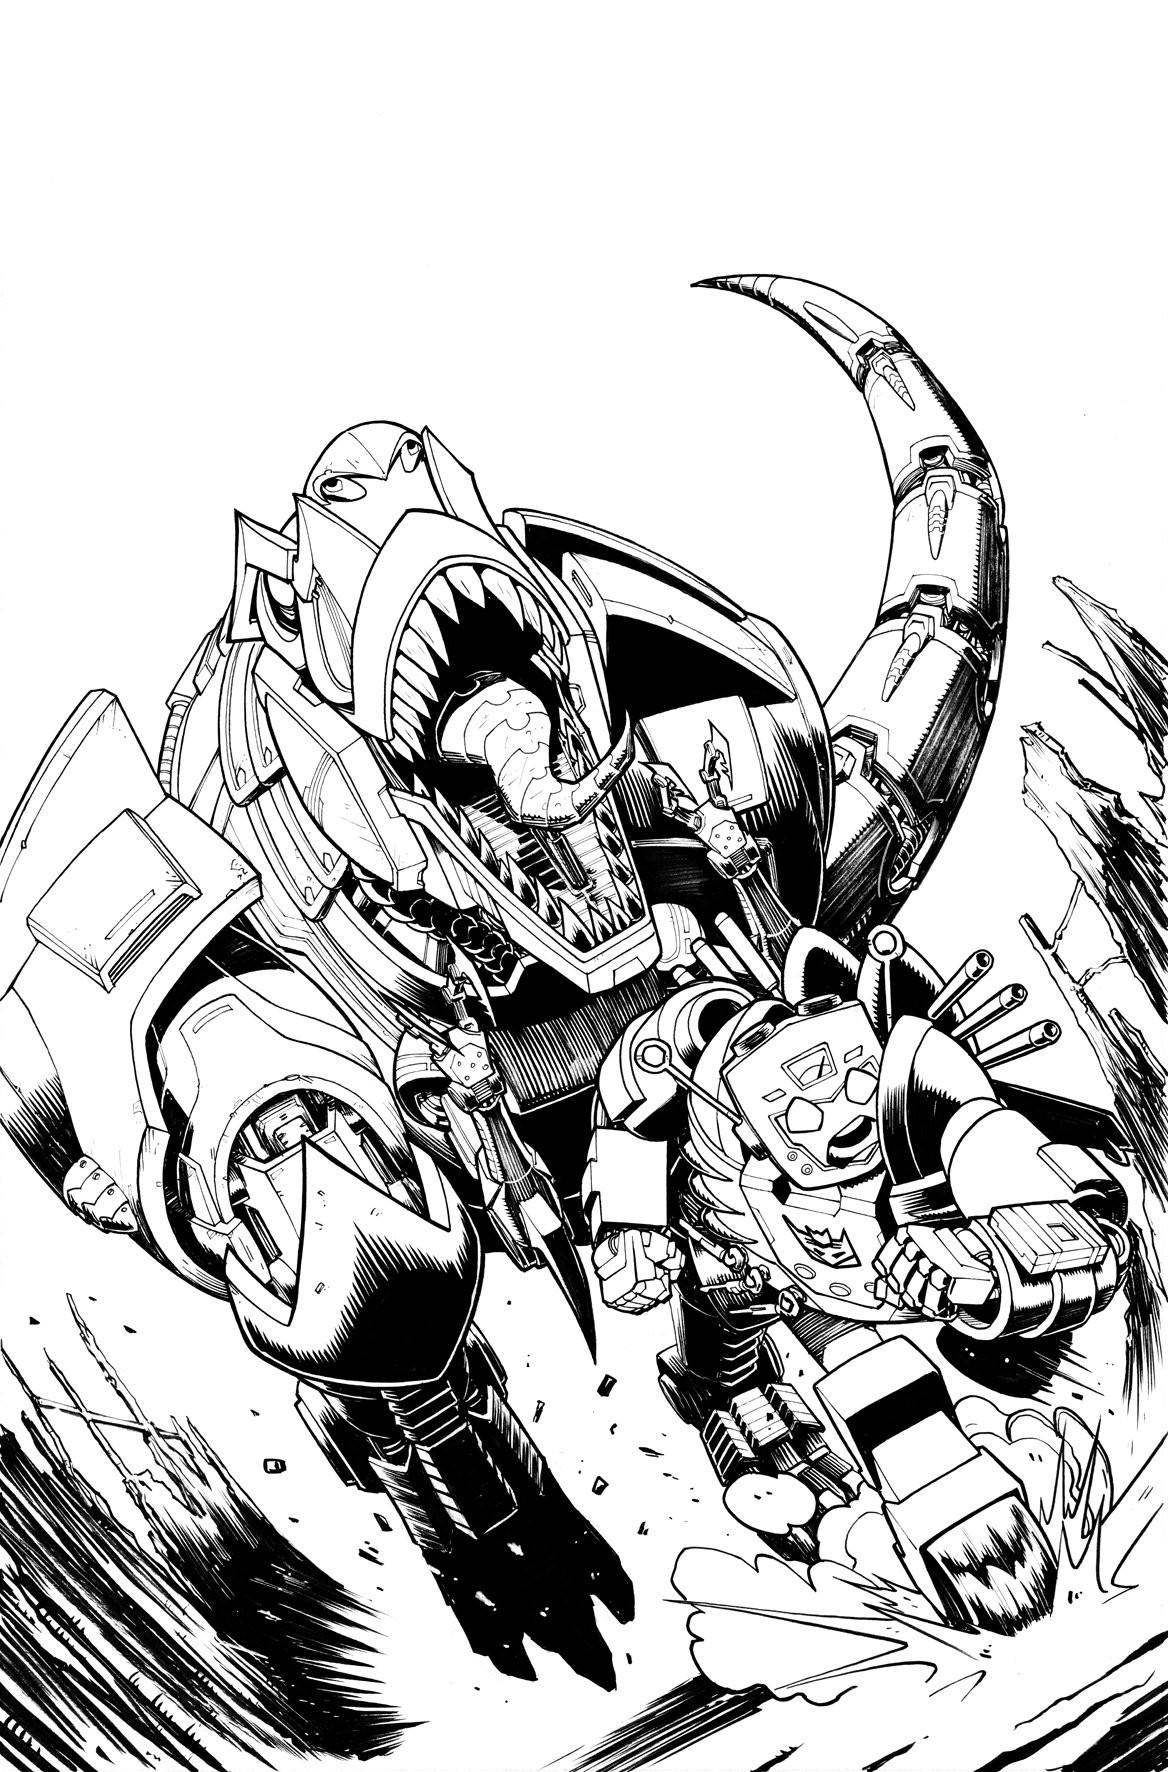 Transformers News: Variant Cover for IDW Transformers: Lost Light #14 by Roche / Burcham